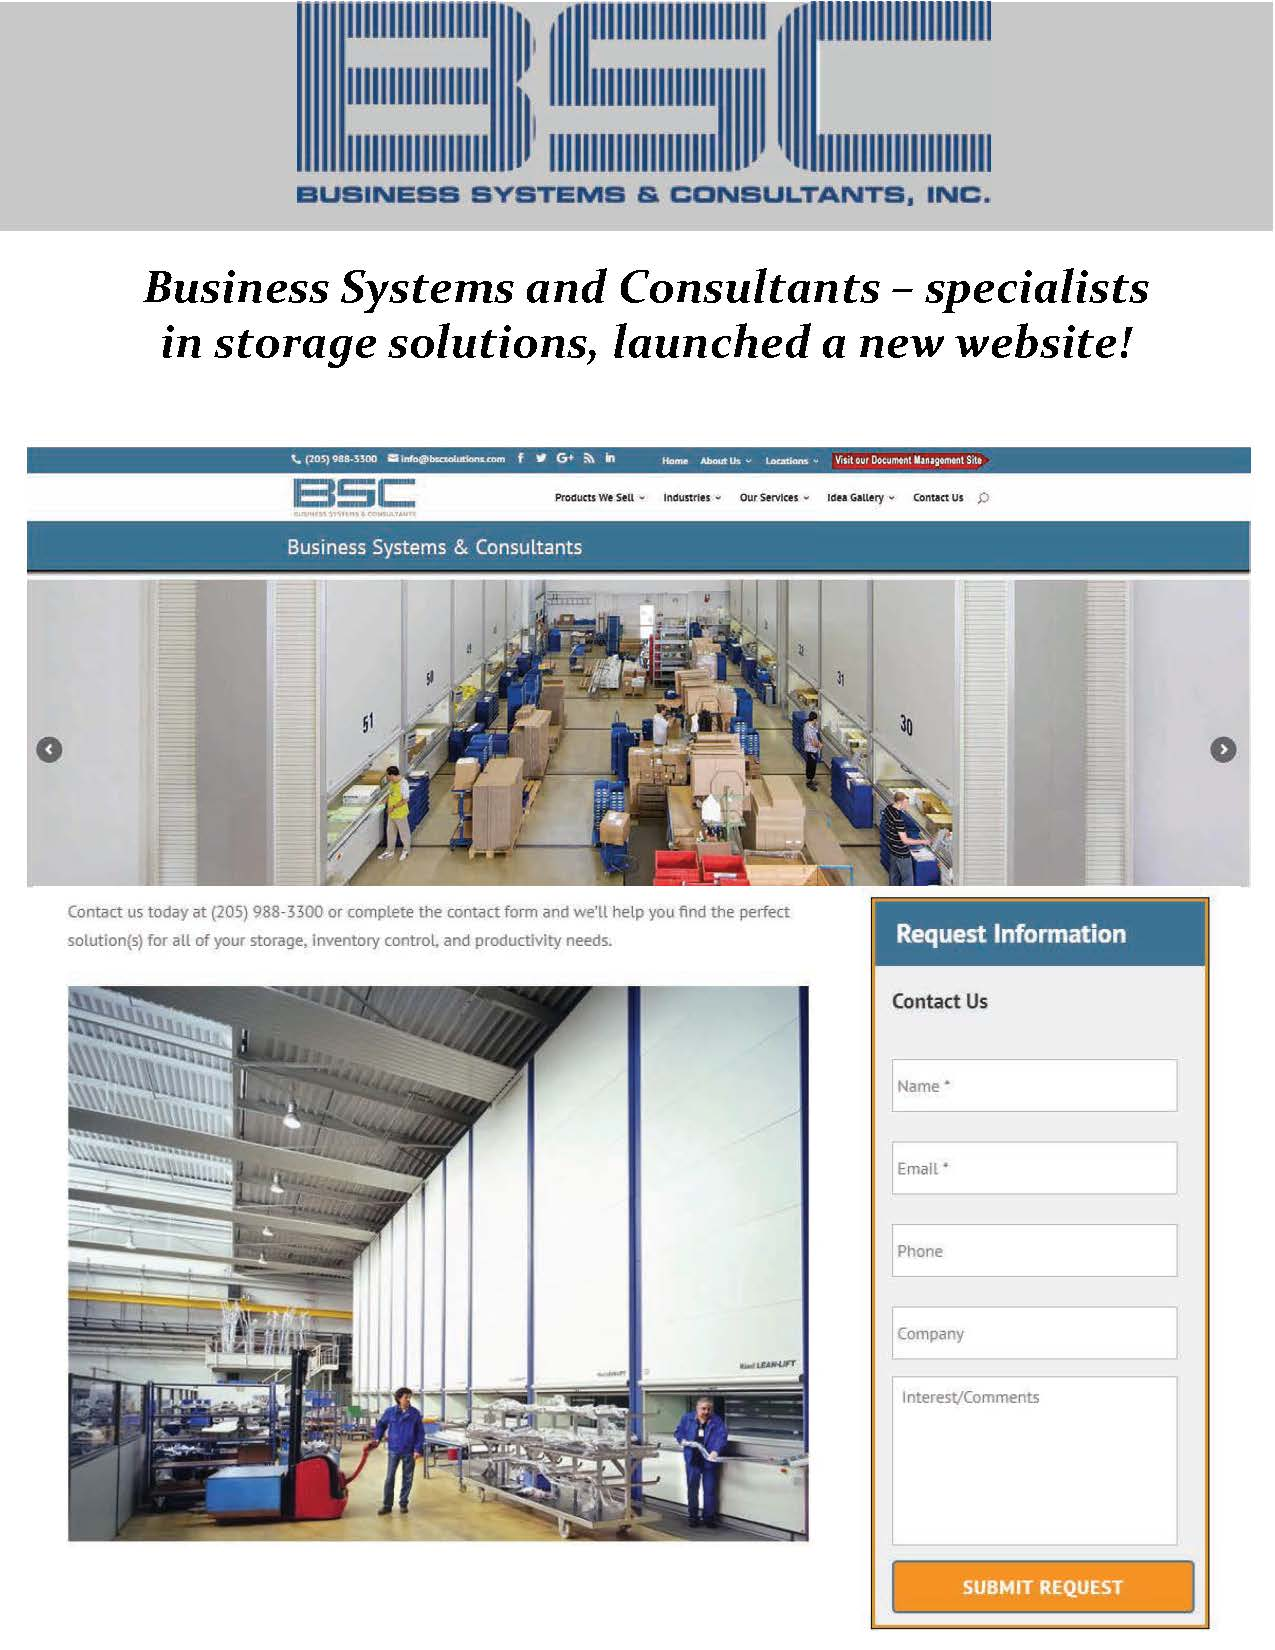 Business Systems and Consultants Launched a New Material Storage Website!